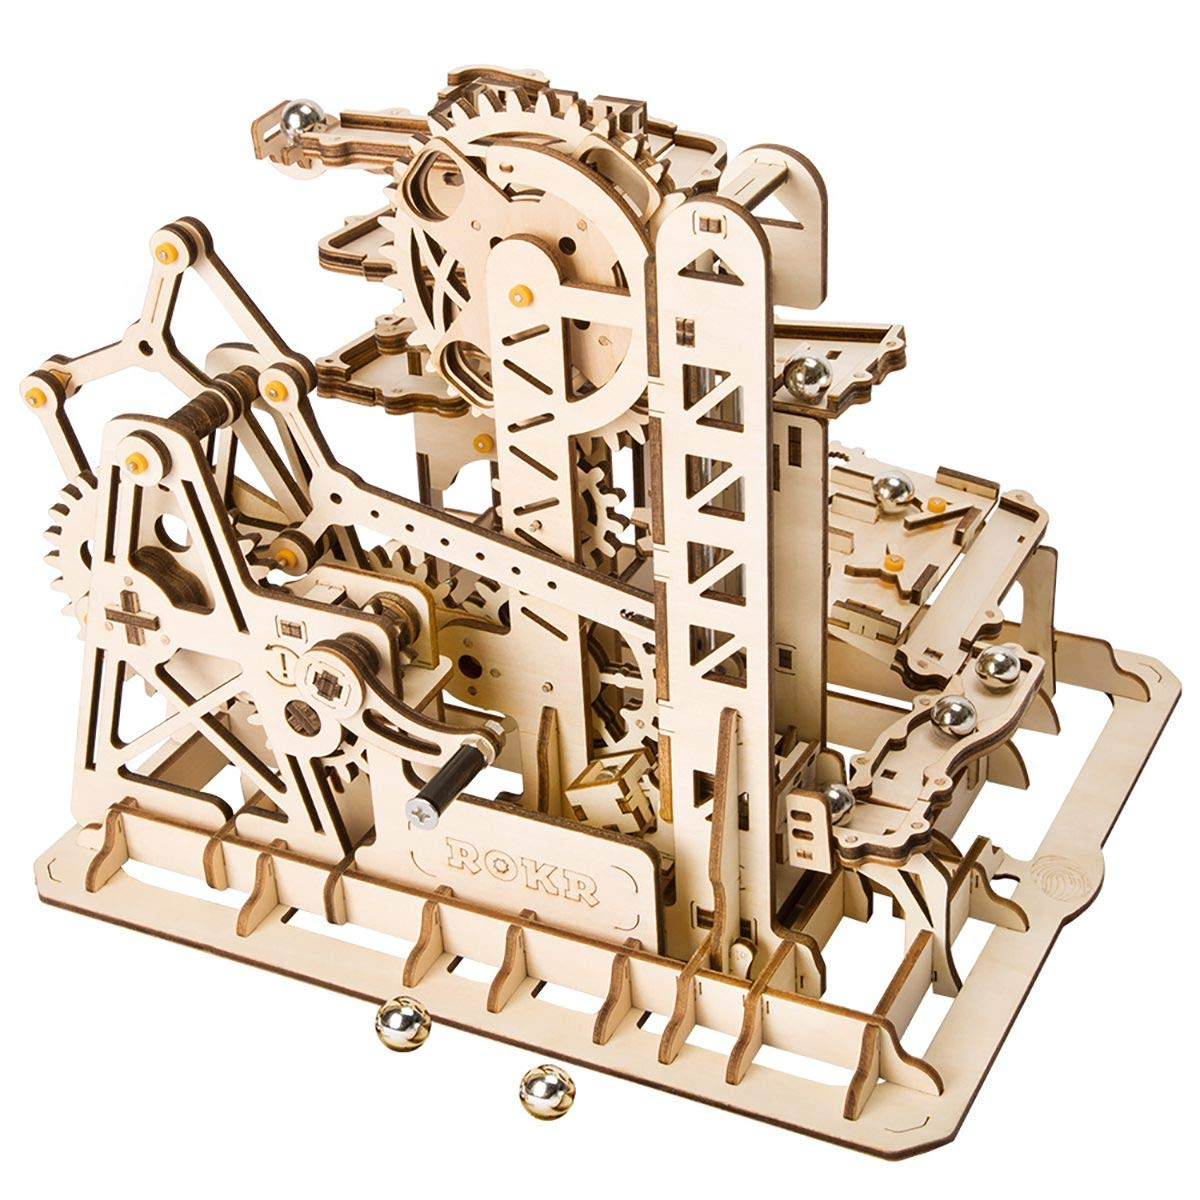 ROKR Handcrafted Marble Run-3d Wooden Puzzle Game-Waterwheel Home Decoration-Building Set- Amazing Tracks with Accessories-Home Decor-Best Christmas,Birthday Gift for Boys and Girls(Marble Parkour)